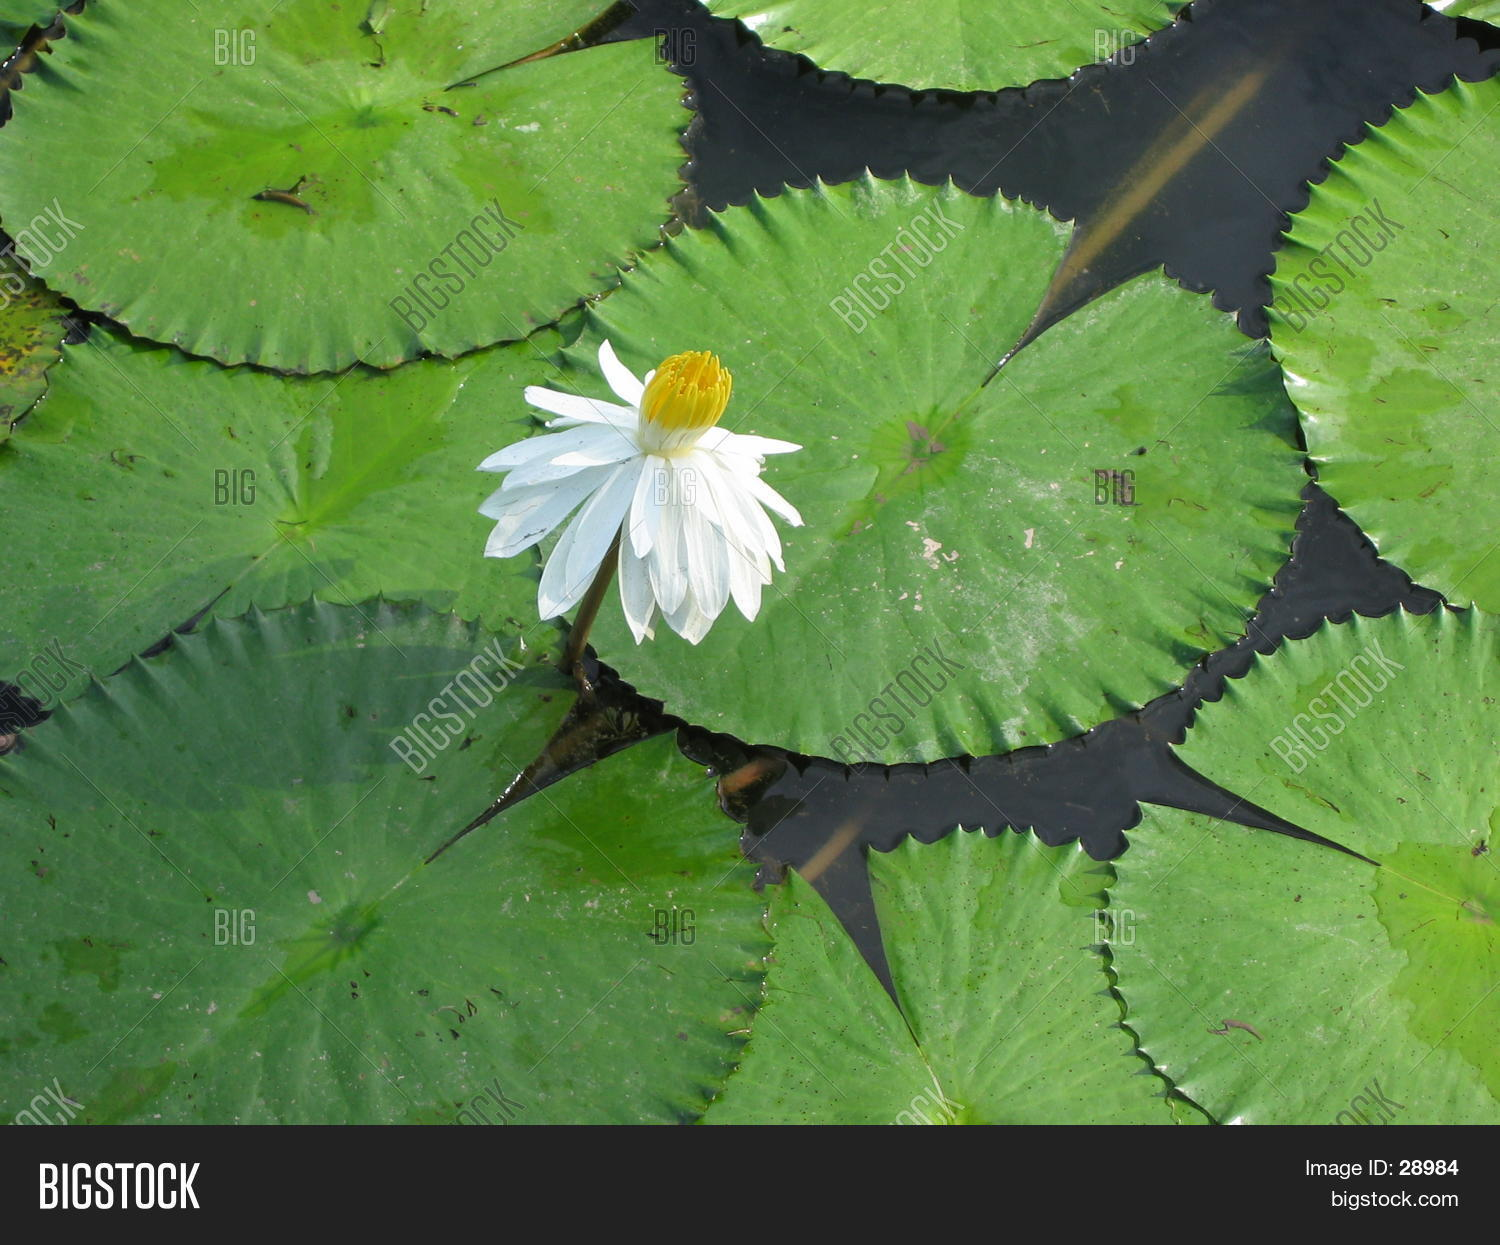 Lotus flower leaf images flowers healthy white sacred lotus flower and leaves white sacred lotus image photo free trial bigstock mightylinksfo